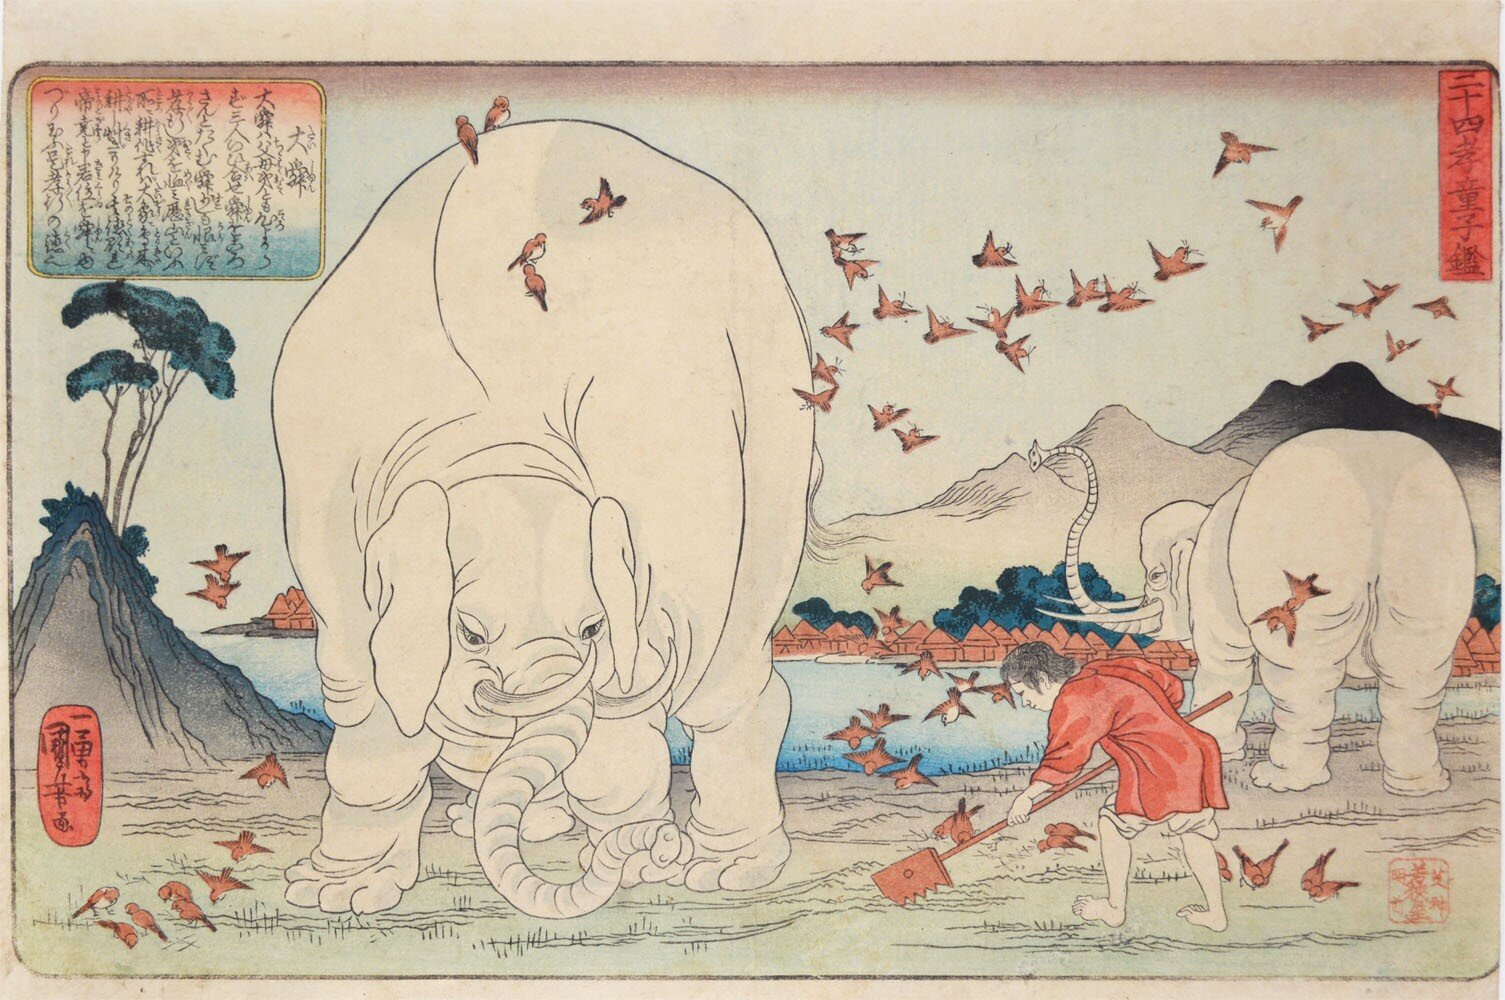 Kuniyoshi.  Taishun . From the series  24 Paragons of Filial Piety . c.1845. Woodblock print.